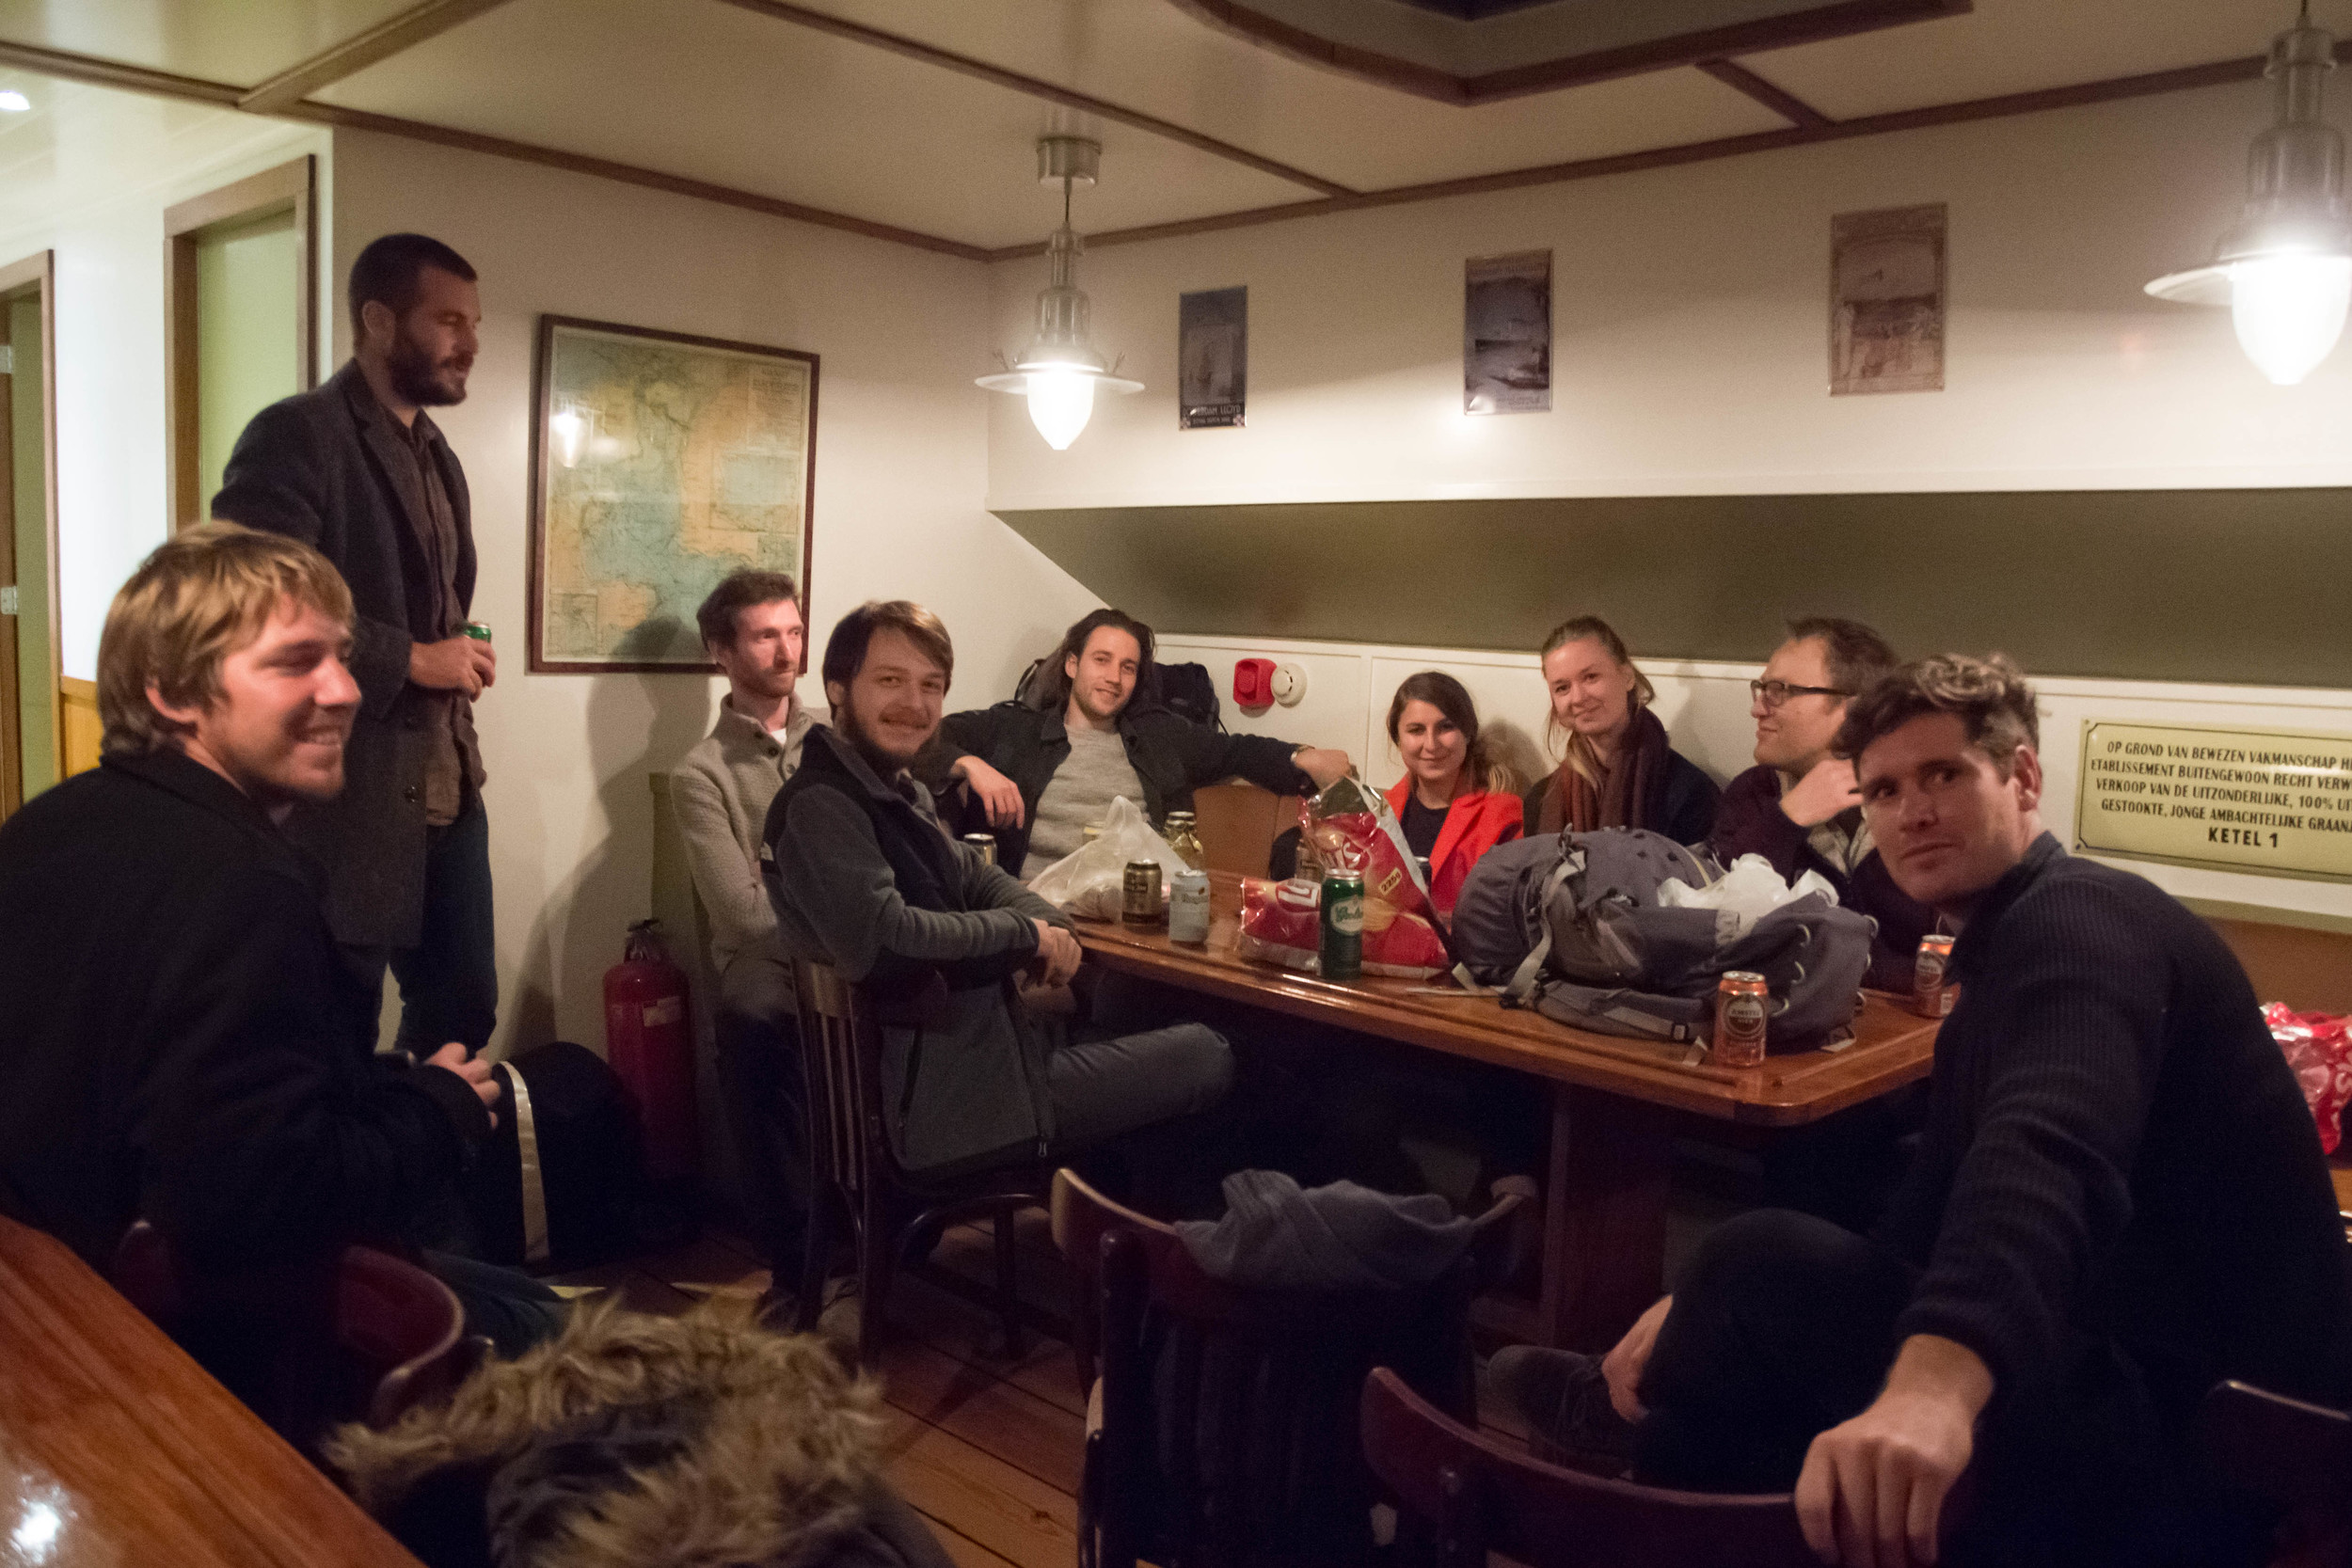 Our host Pepjin (dutch for Popeye?) welcomed us to his wonderfully atmospheric early 20th century barge.